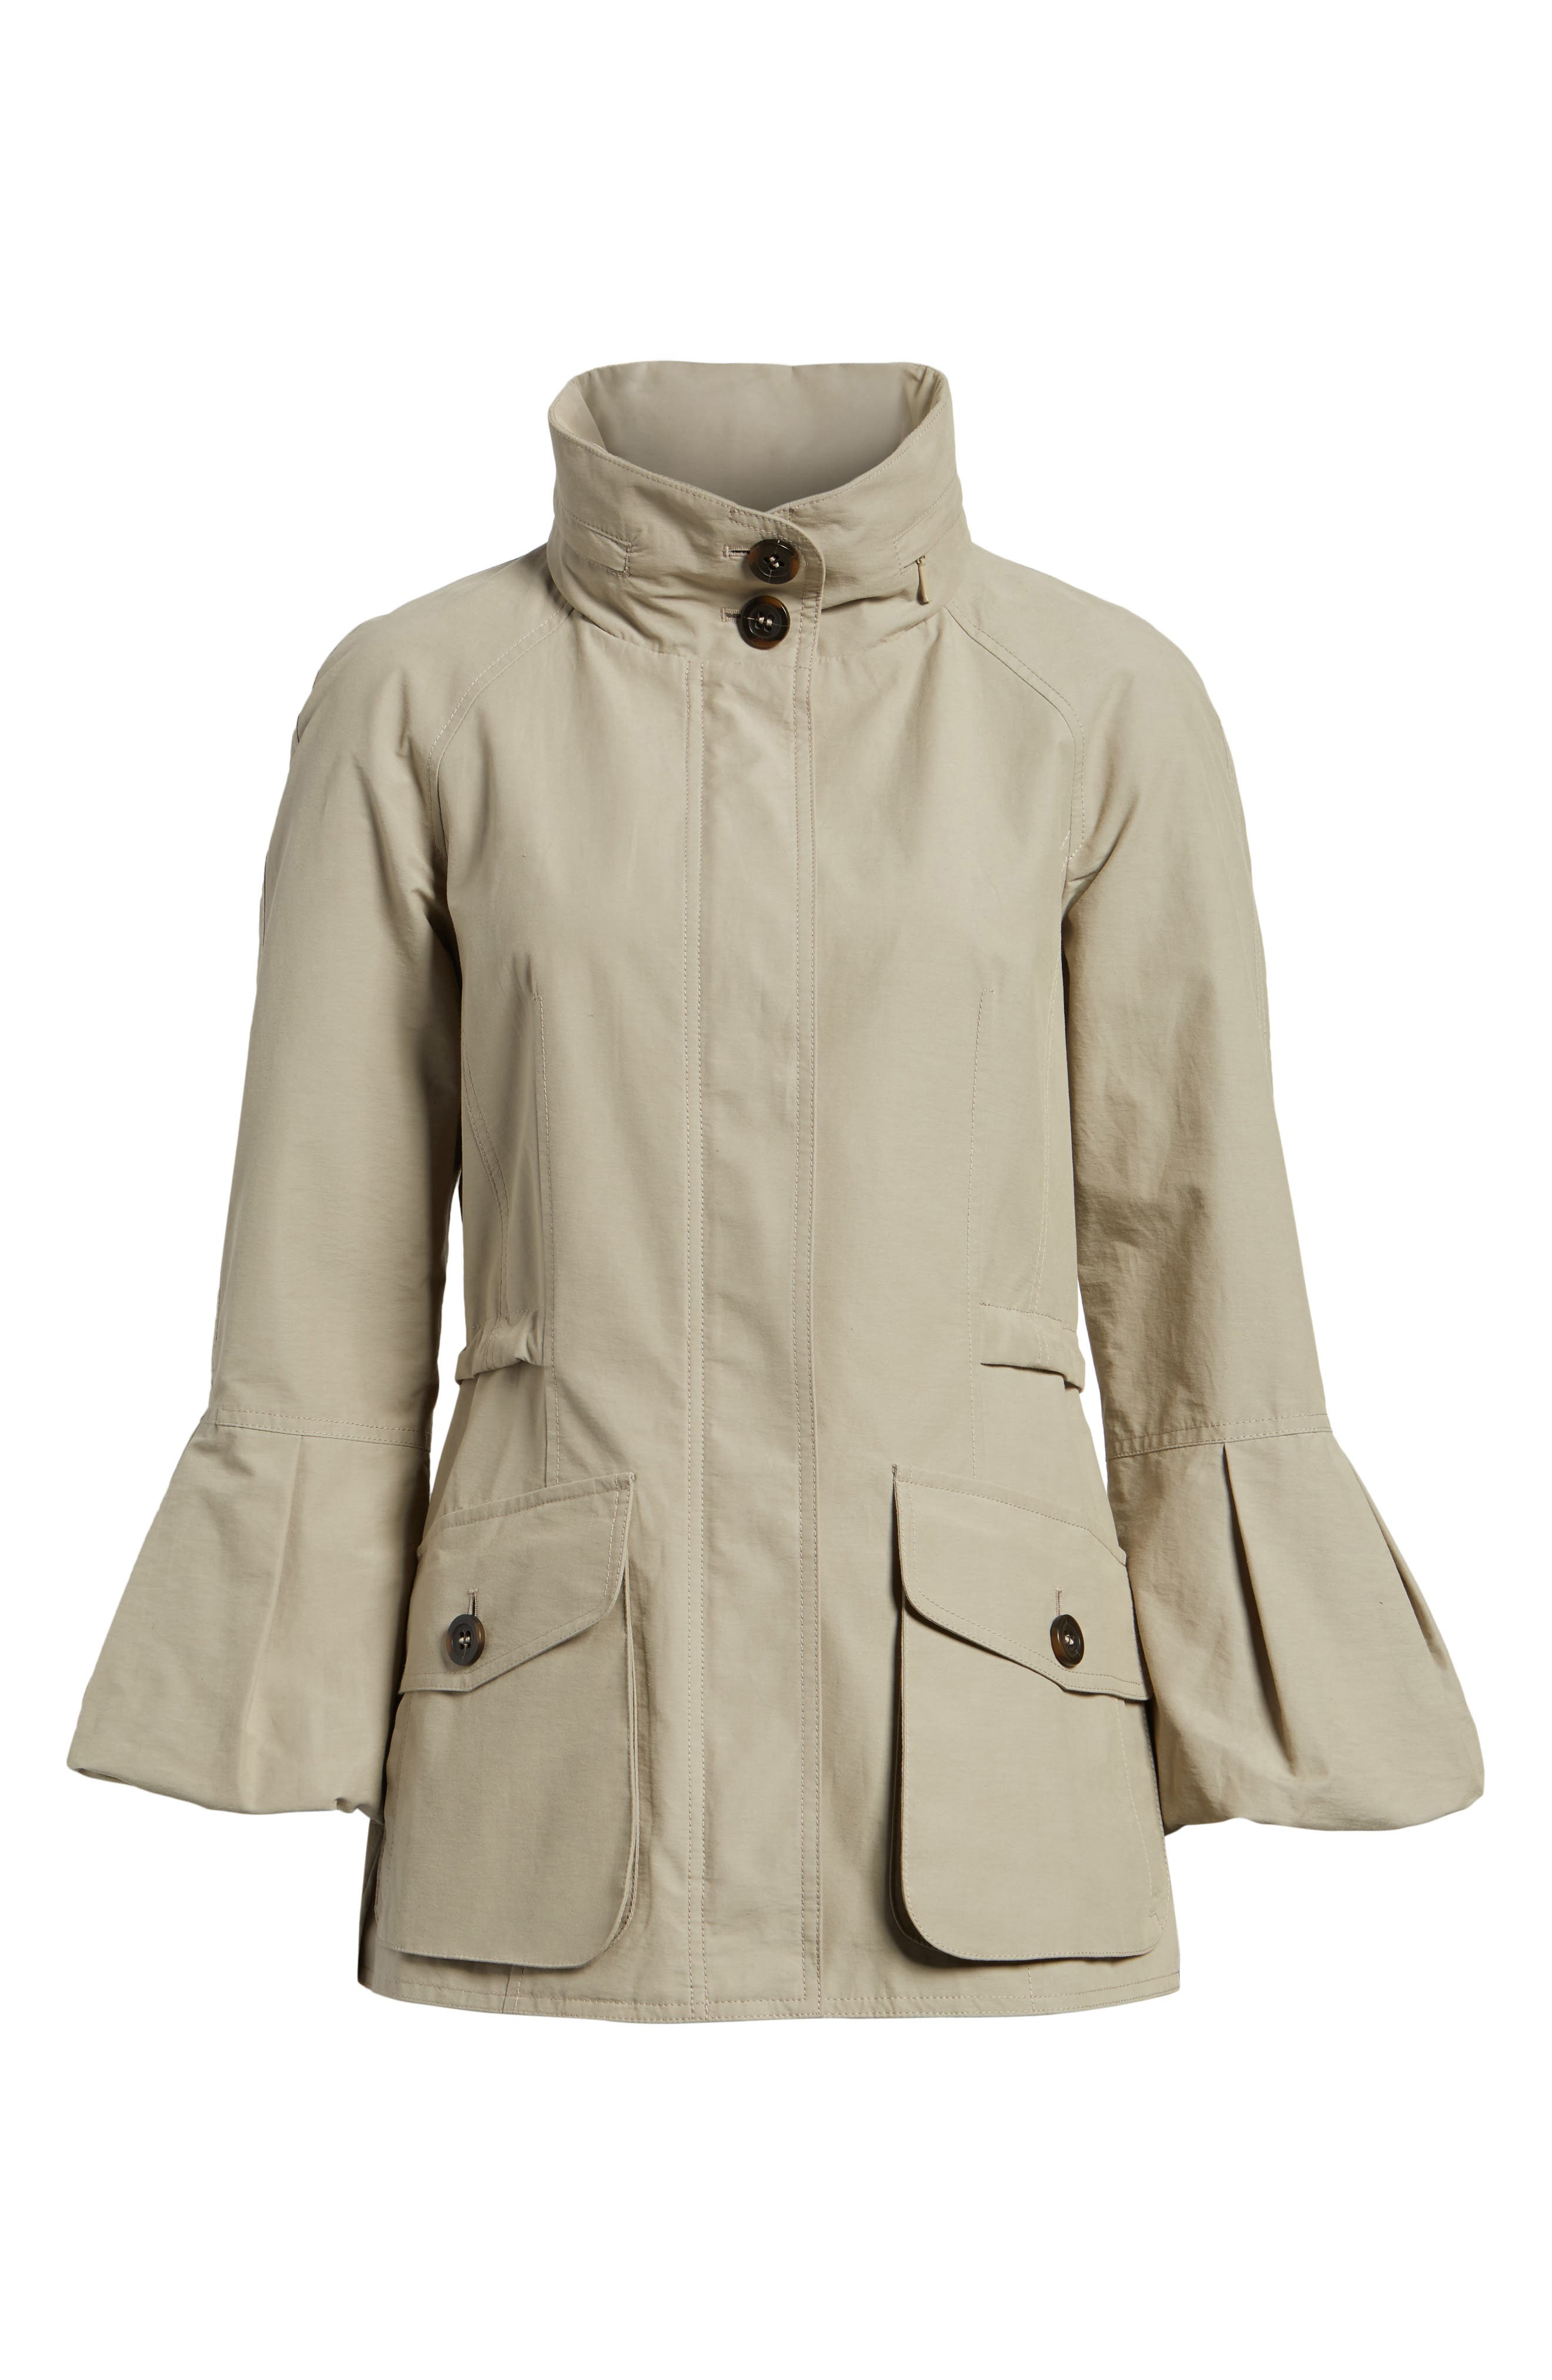 Bell Sleeve Jacket with Stowaway Hood,                             Alternate thumbnail 5, color,                             255